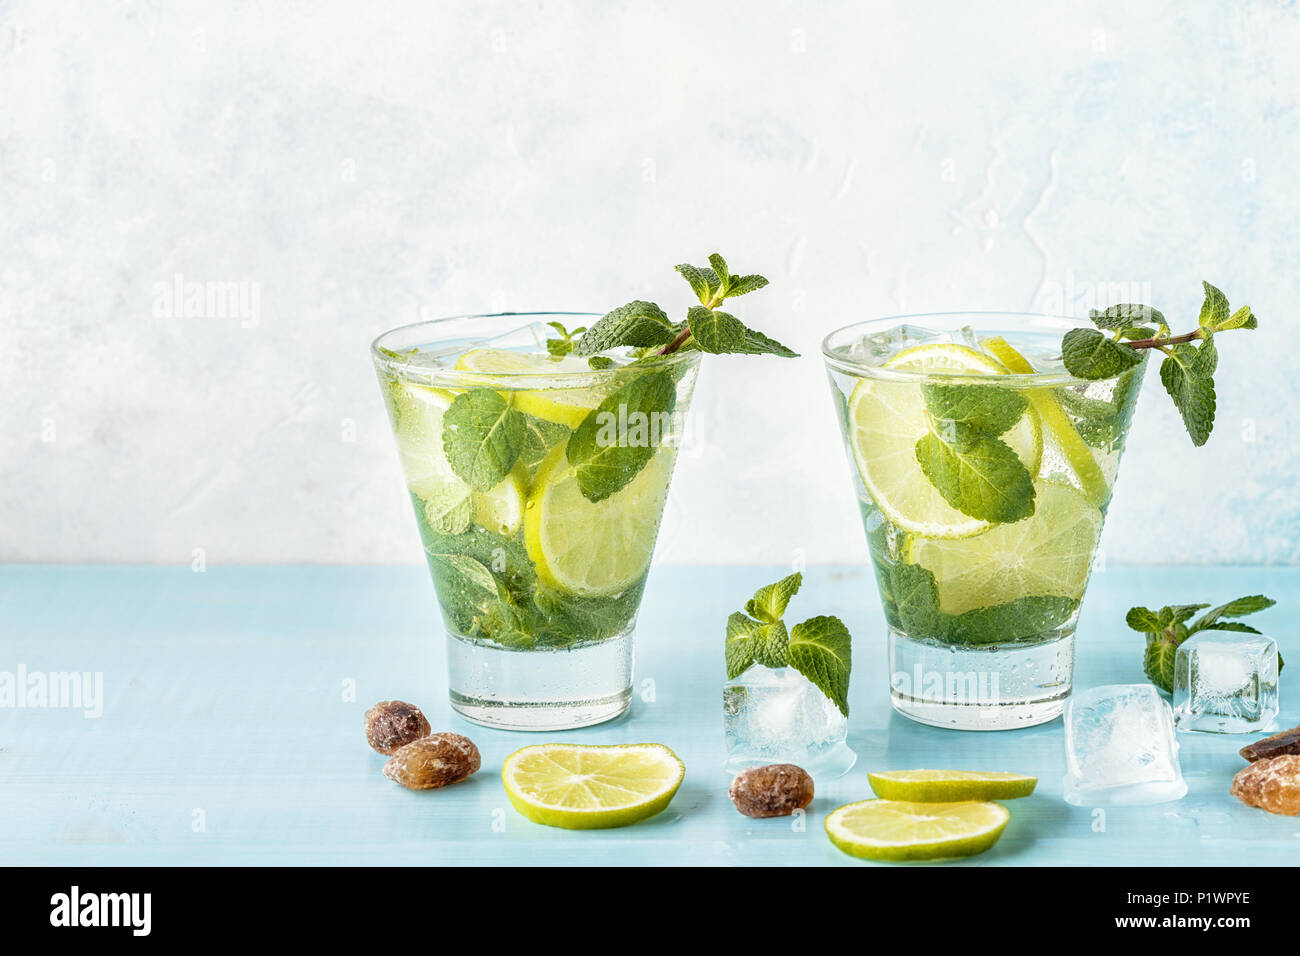 Mojito cocktail with lime and mint, selective focus. - Stock Image